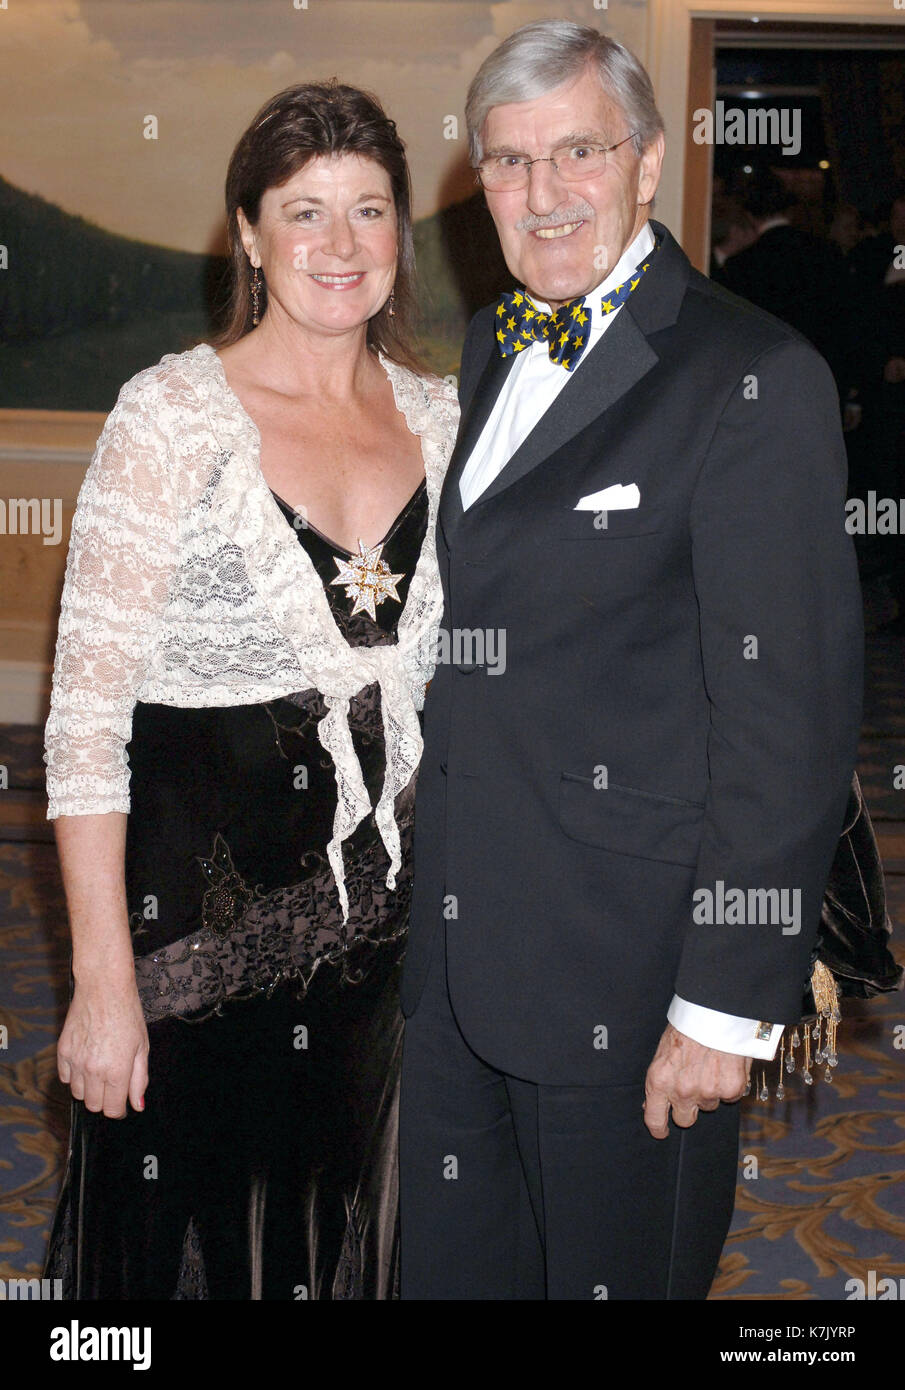 Picture Must Be Credited CAlpha Press 064144 14122006 Jimmy Hill And Wife Bryony The Sparks Winter Ball At London Hilton Park Lane